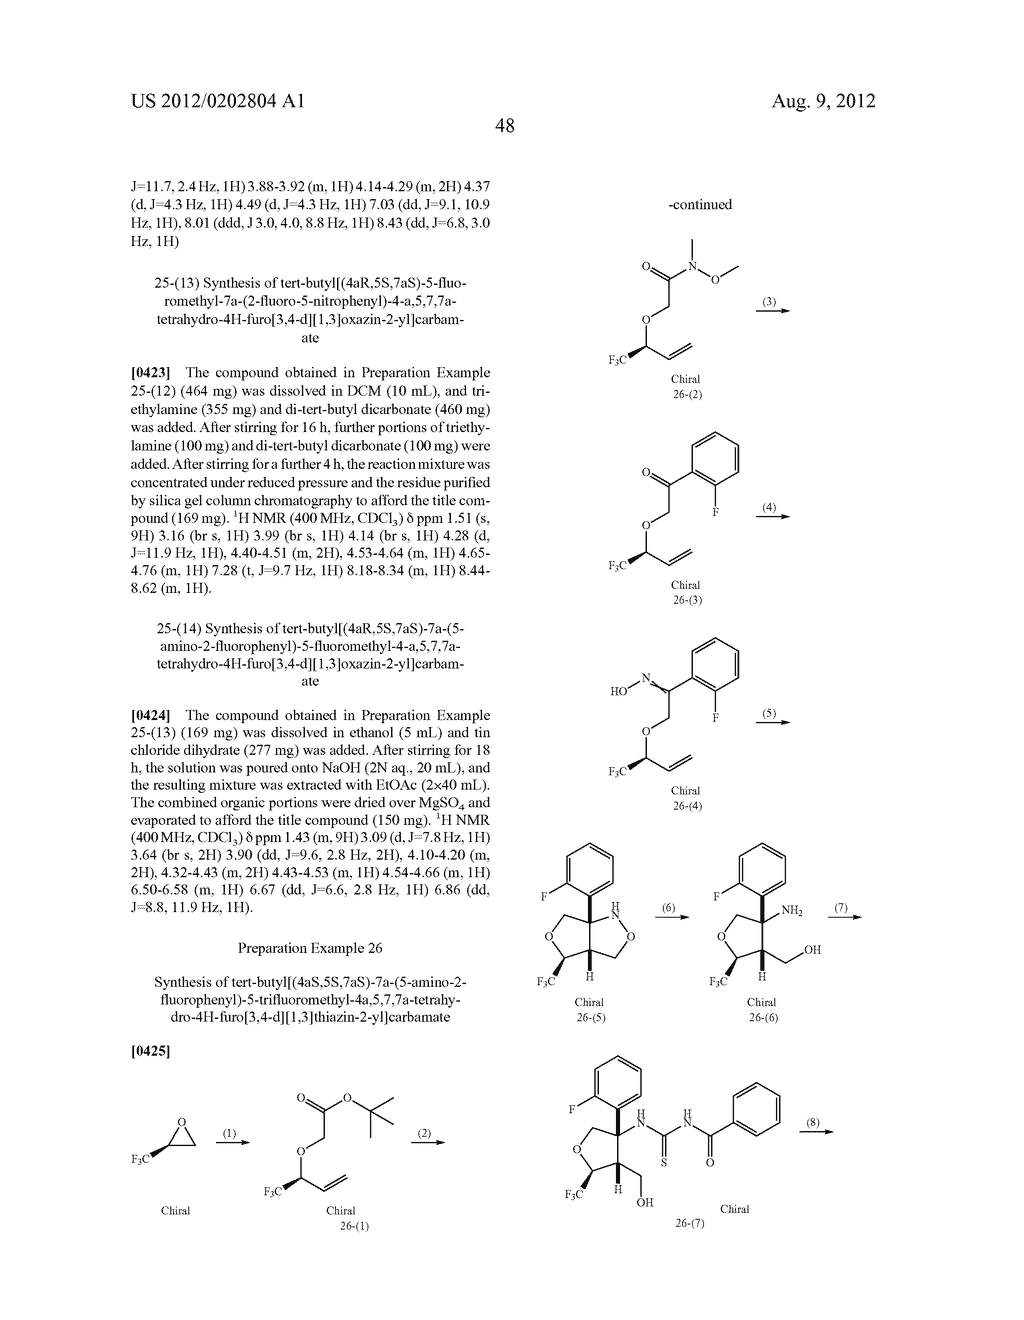 FUSED AMINODIHYDRO-OXAZINE DERIVATIVES - diagram, schematic, and image 49